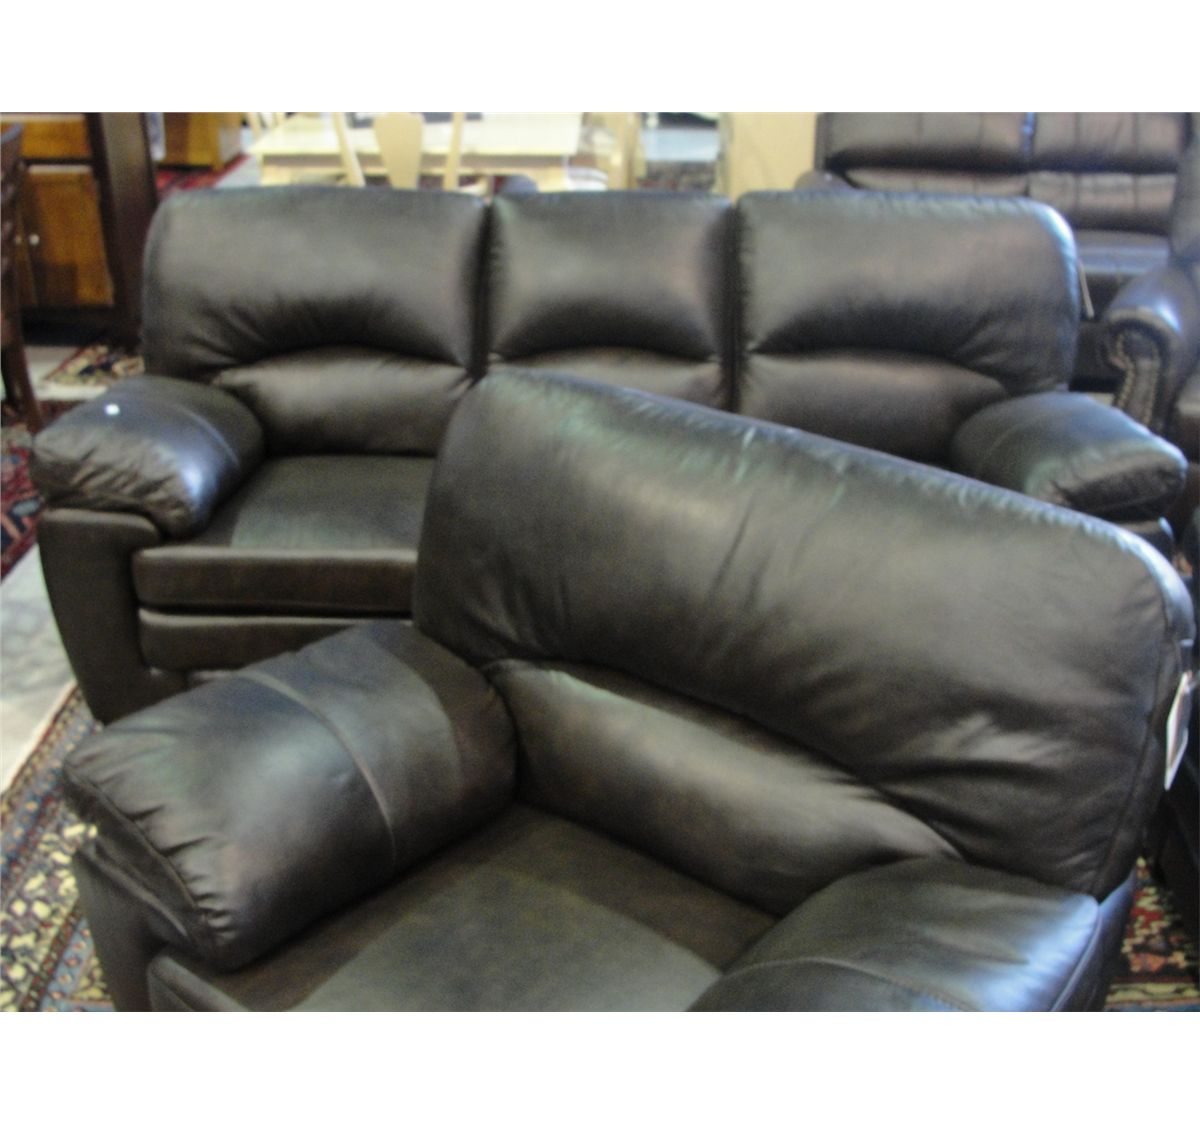 4 Piece Chocolate Brown Leather Sofa Set Sofa Loveseat Chair And Ottoman Able Auctions